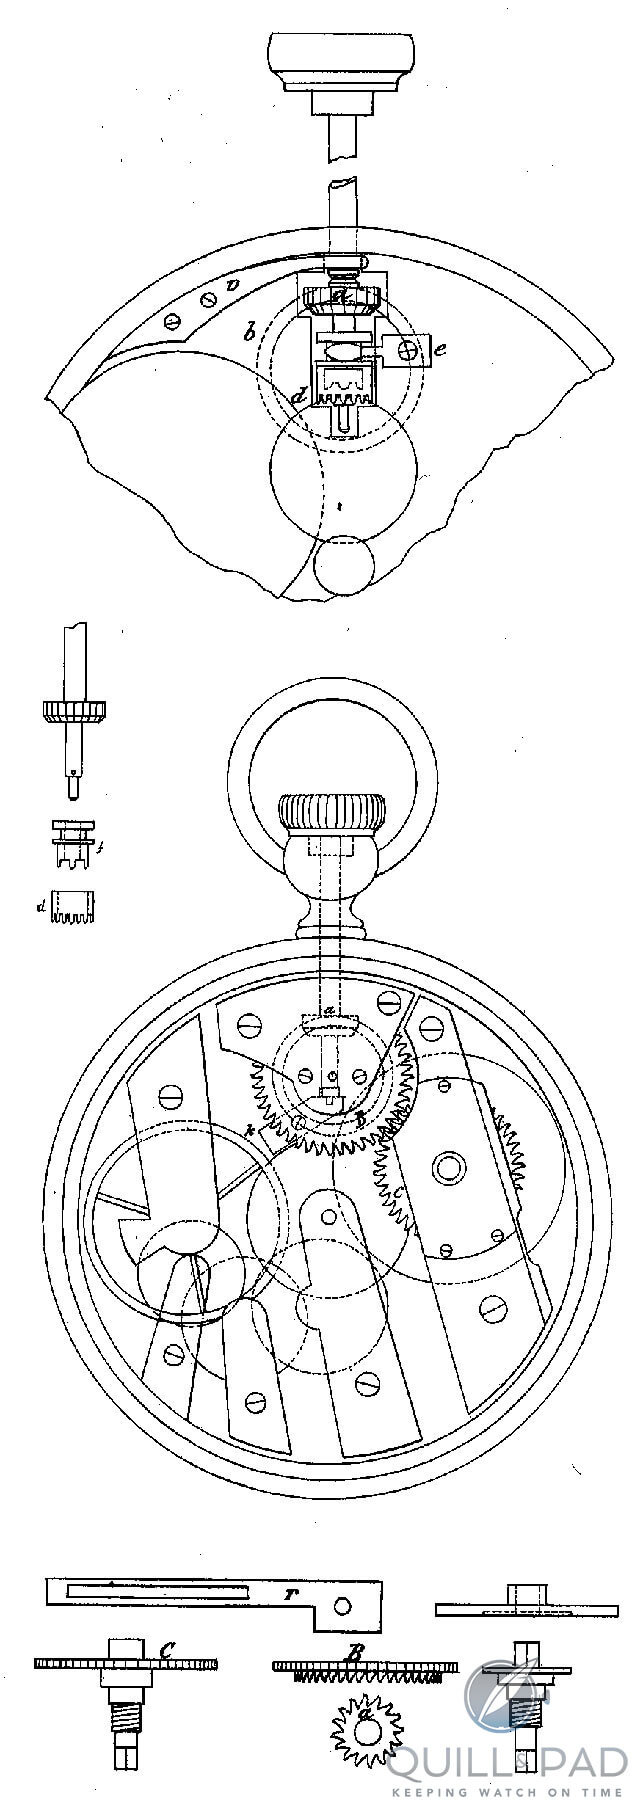 Patent for JA Philippe's keyless winding system